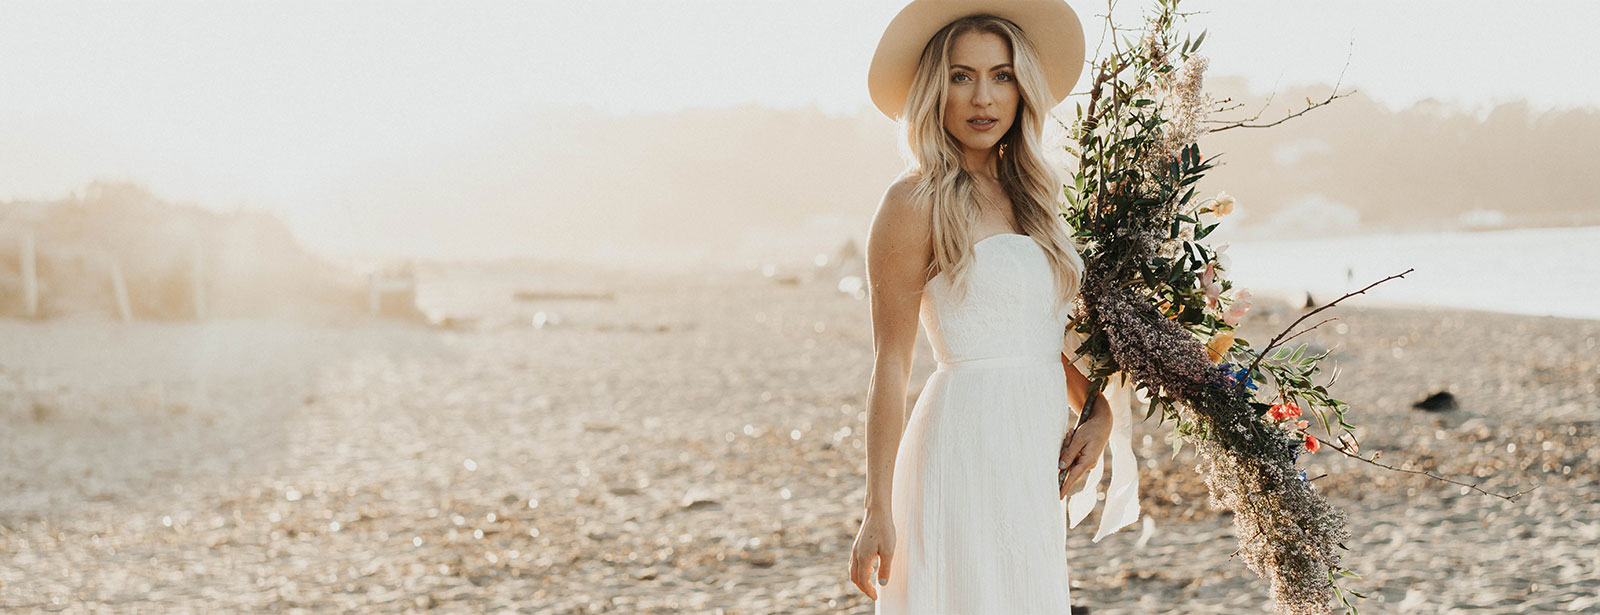 Bride holding bouquet in casual wedding dress, on beach.